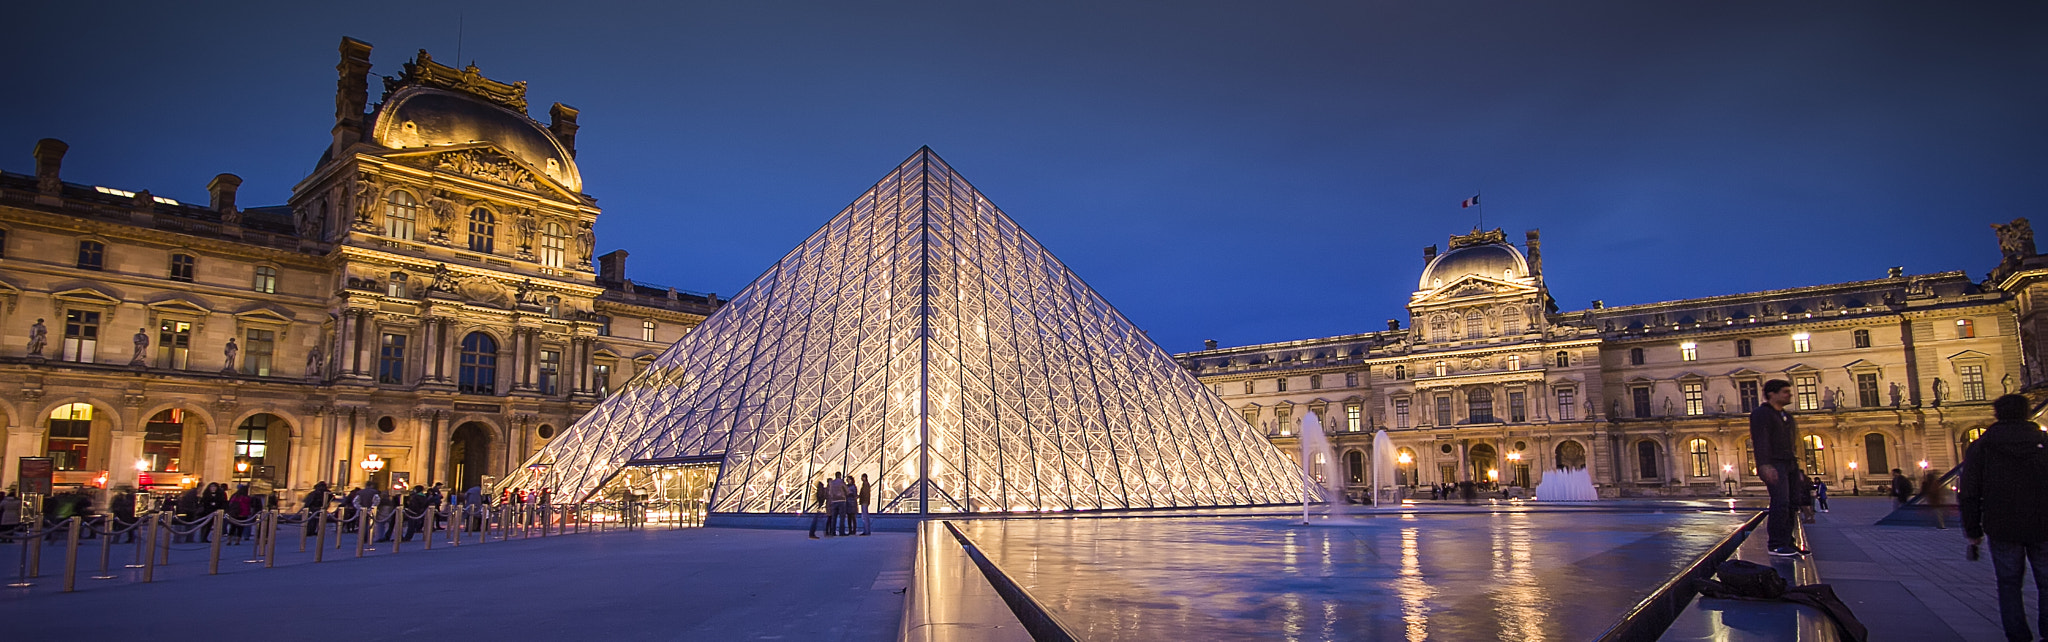 Photograph A week in Paris by Nick Pandev on 500px